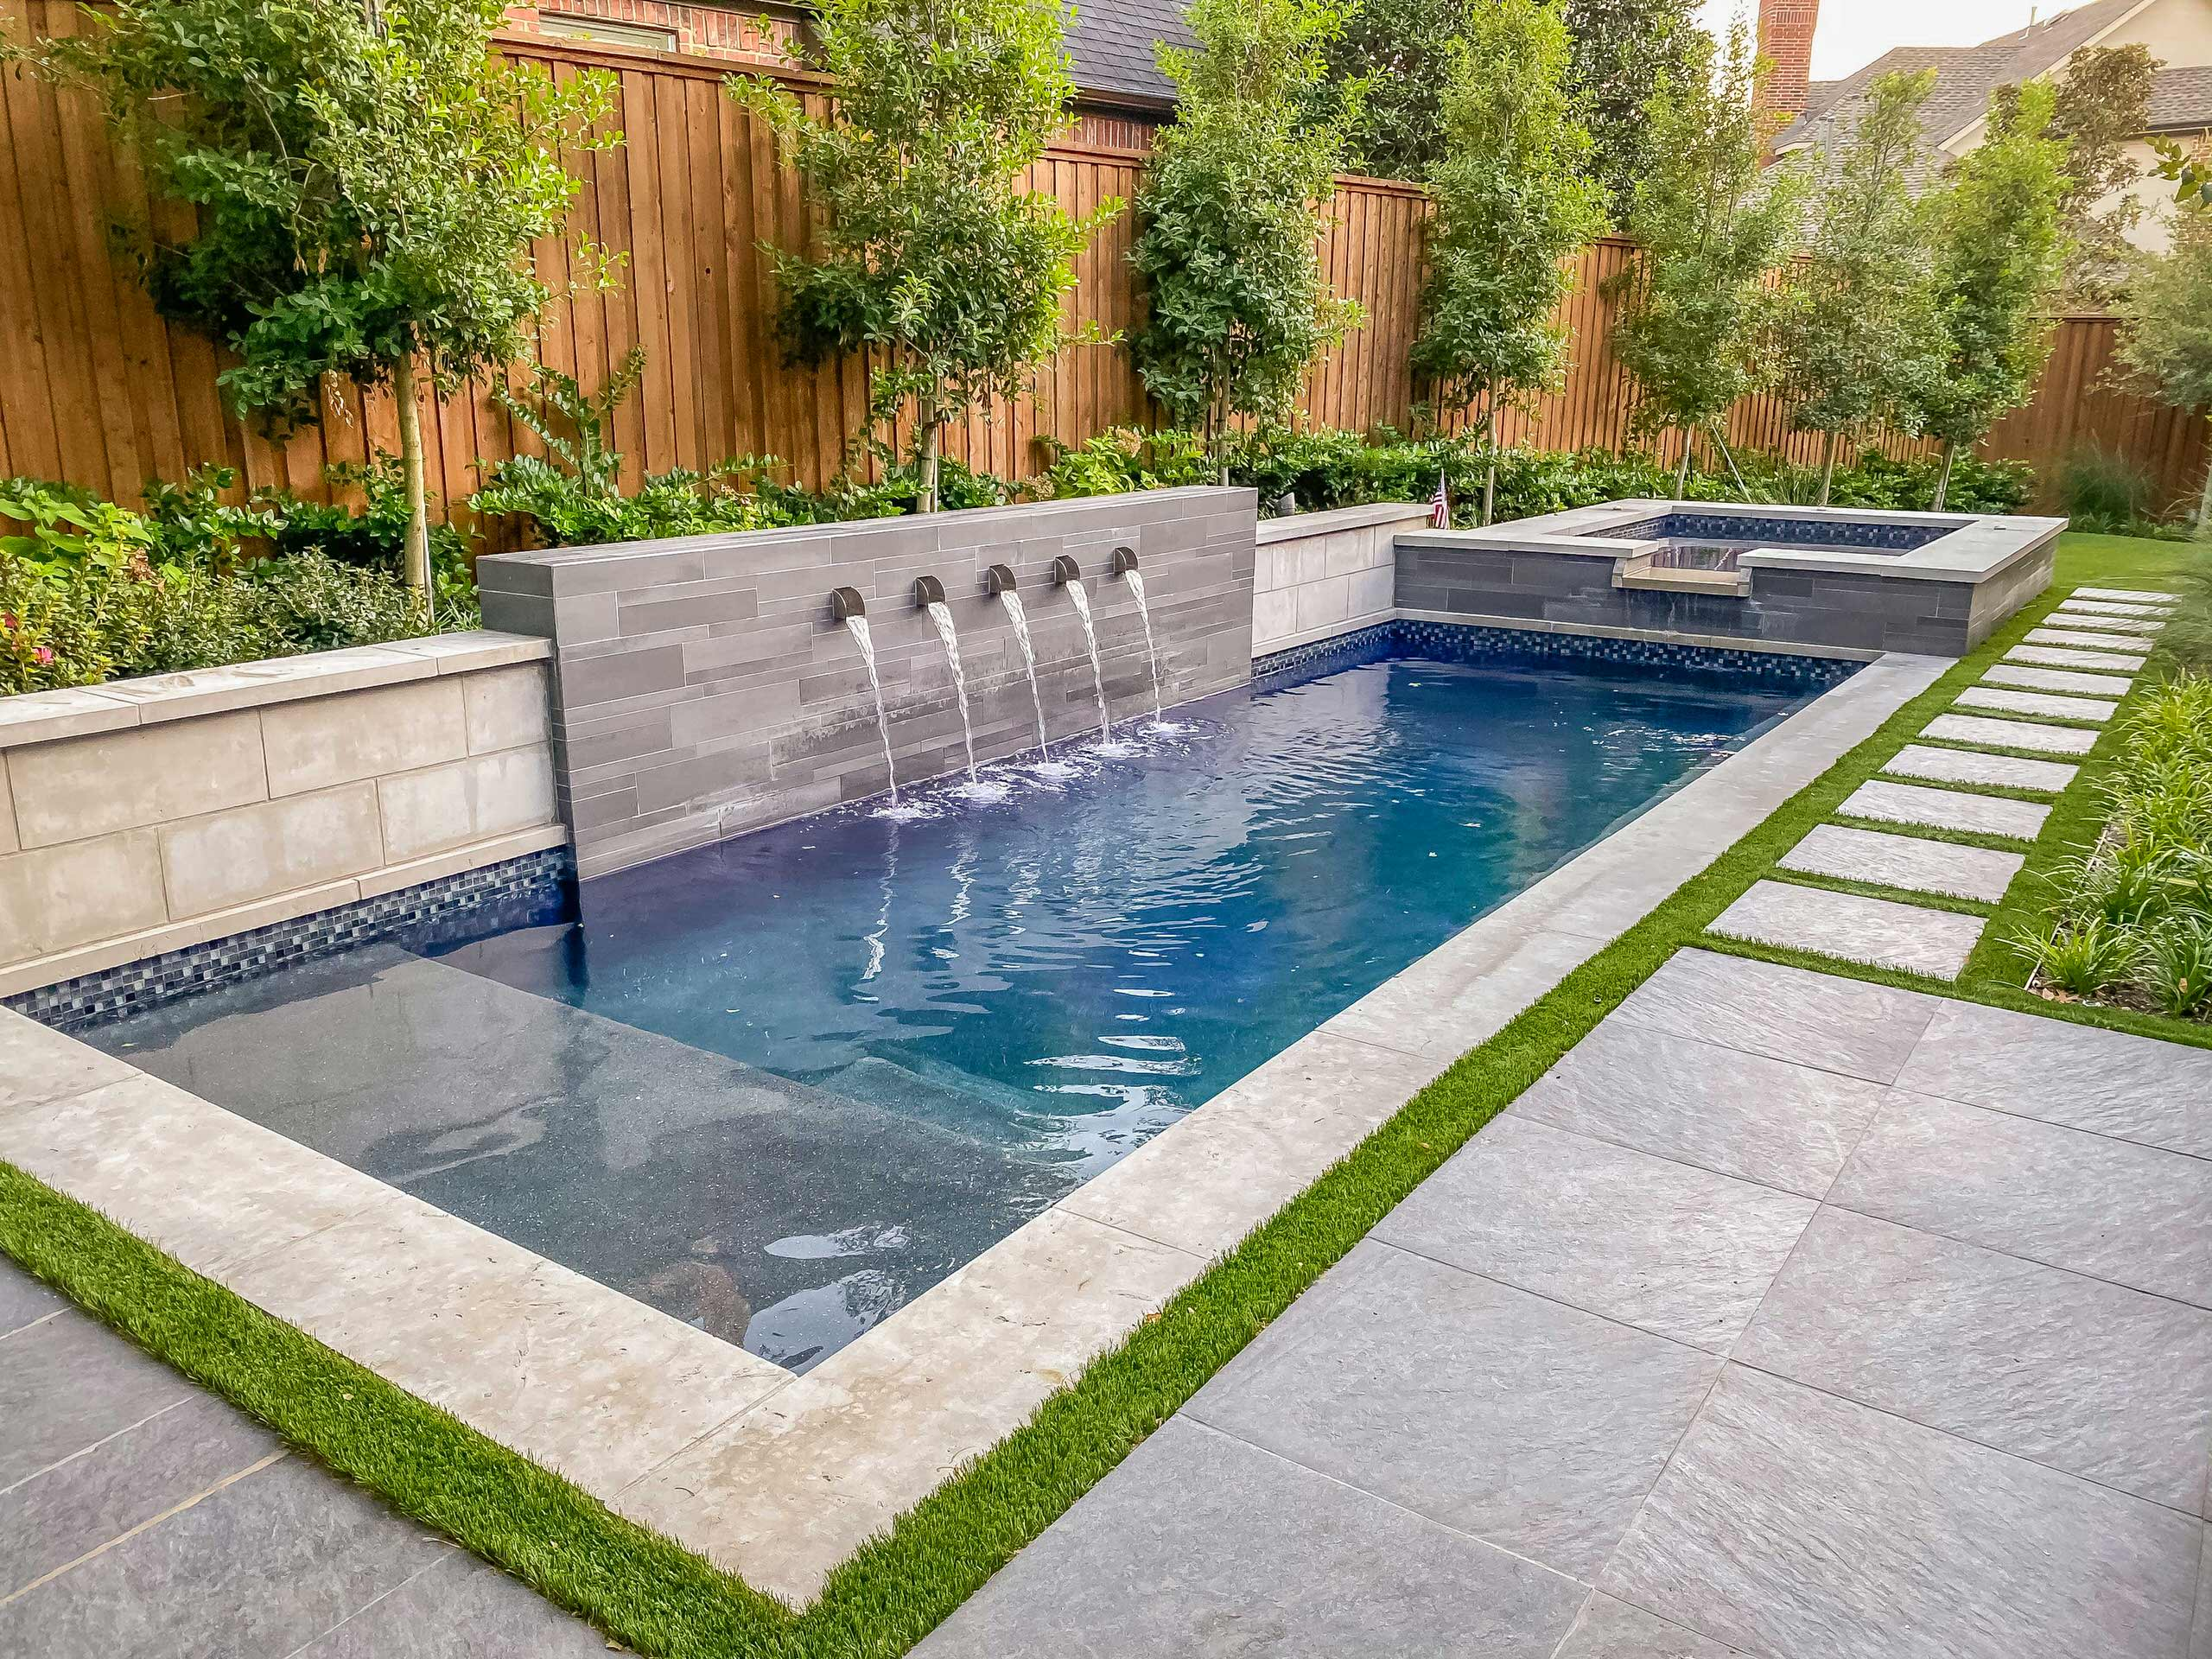 75 Beautiful Modern Pool Pictures Ideas April 2021 Houzz